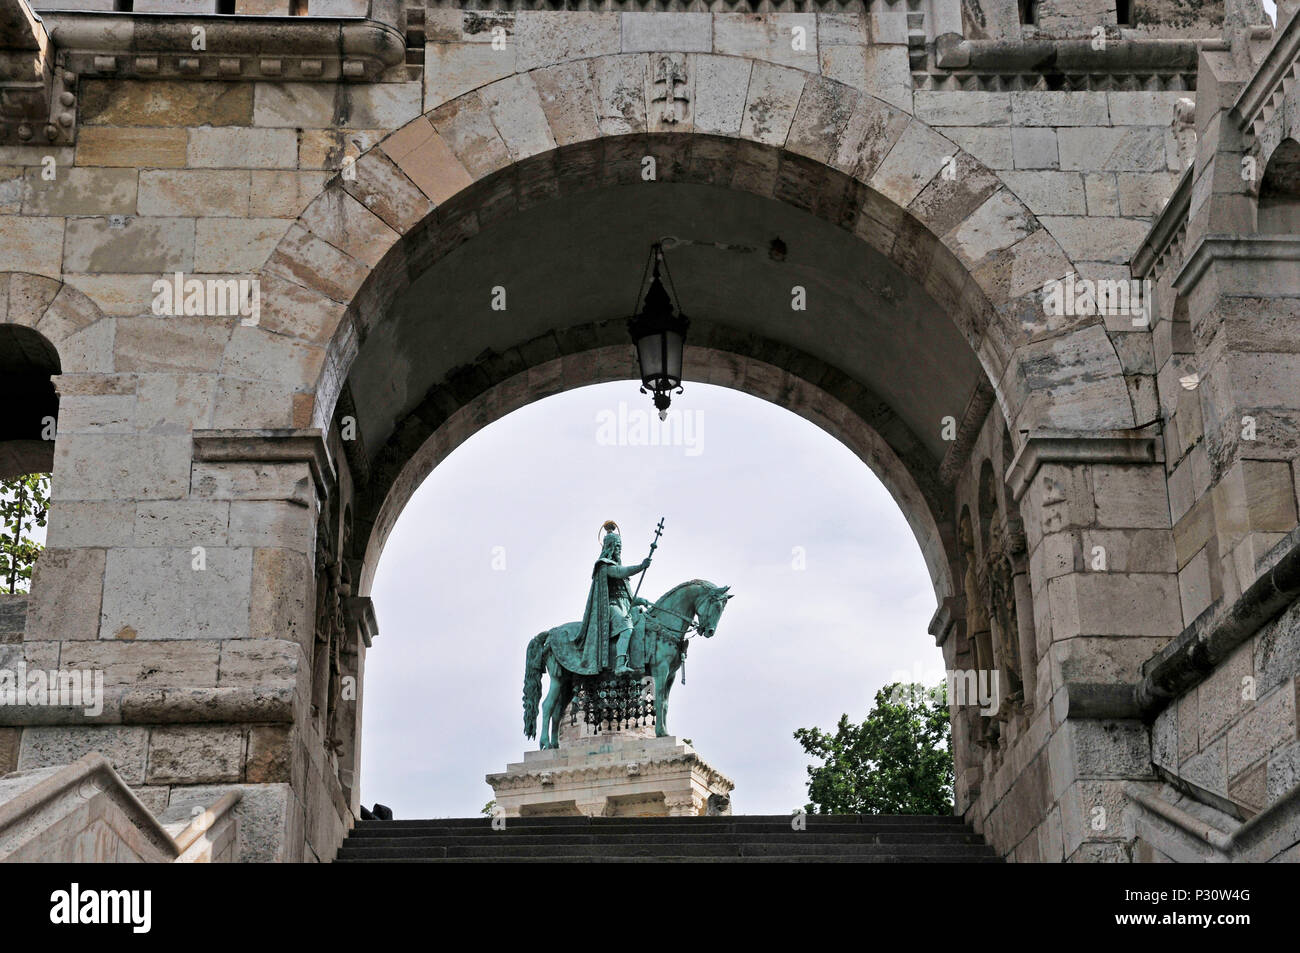 The statue of Stephen I of Hungary threw the arch, Fisherman's Bastion, Hungary, Budapest, Europe, Stock Photo